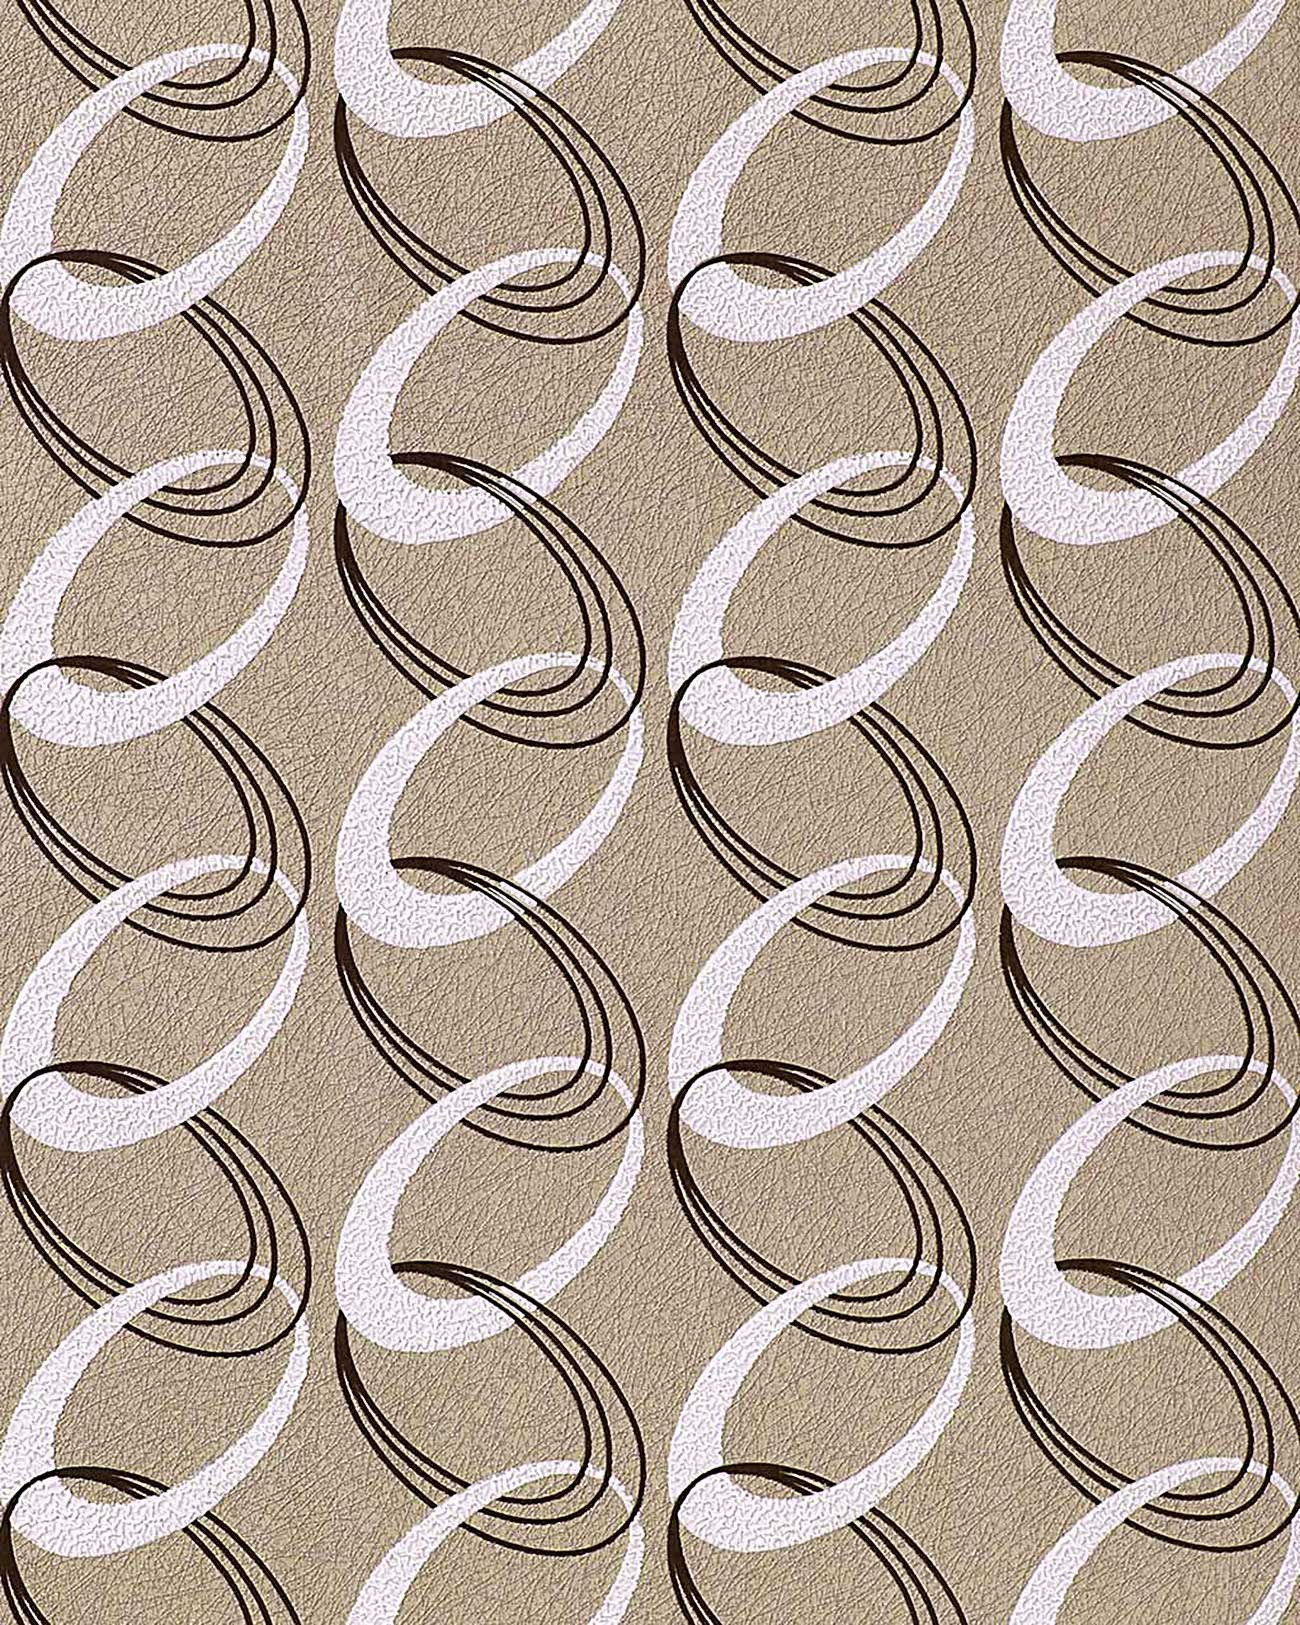 fashion retro rings wallpaper wall textured 70s style edem. Black Bedroom Furniture Sets. Home Design Ideas